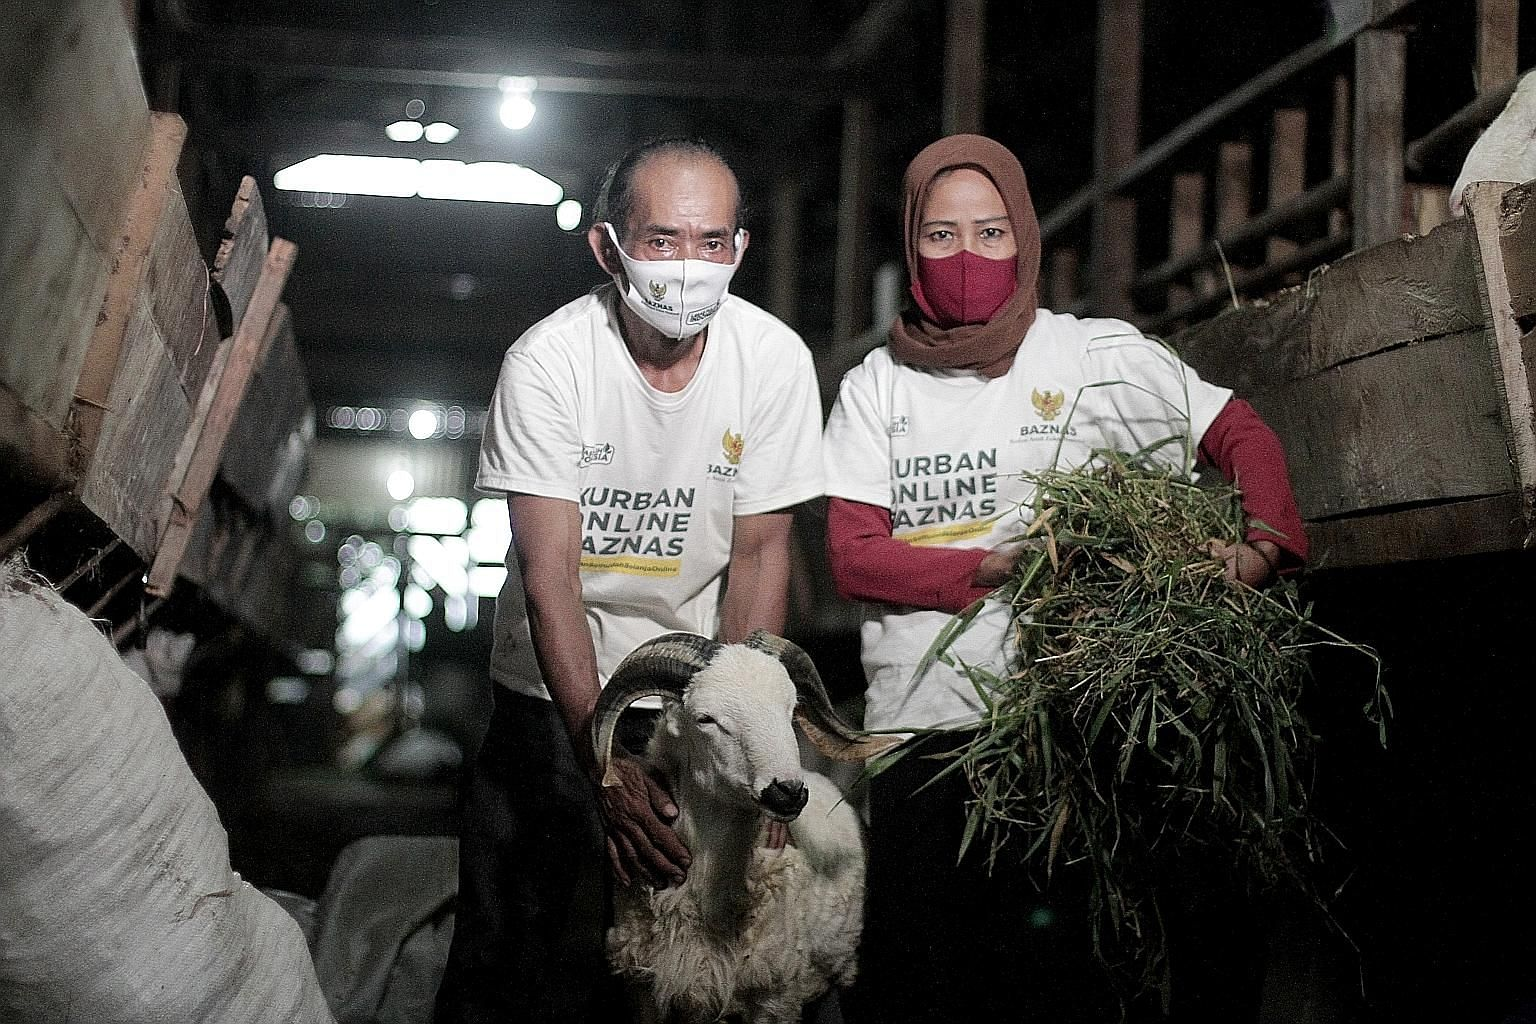 Local breeders in Bogor, West Java, who supply livestock to non-structural government agency Baznas. The korban ritual this year will be carried out at slaughterhouses instead of in mosques and public spaces, and crowds will be barred from watching t